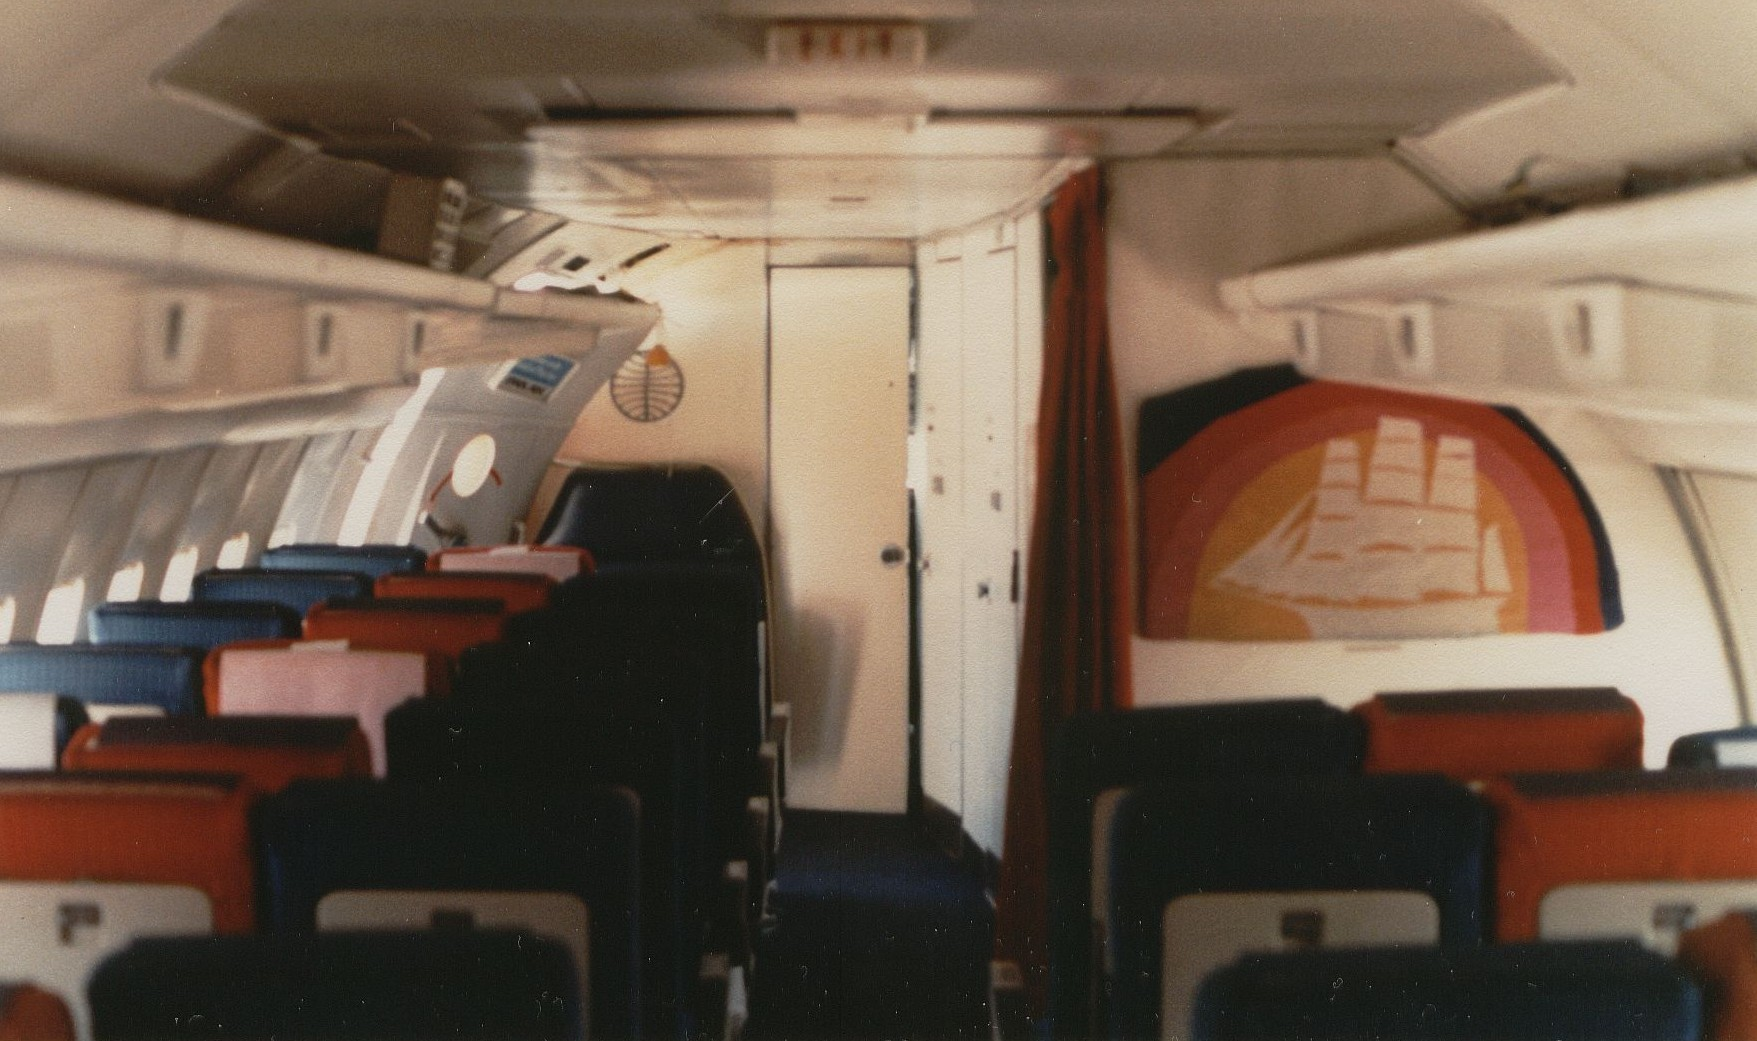 August 1981 The forward cabin of a Pan Am Boeing 707 in an all economy configuration with 180 seats.  In front of the Clipper Ship bulkhead artwork is the forward galley and two lavatories.  In the front center isthe door to the cockpit and to the left the passenger door.